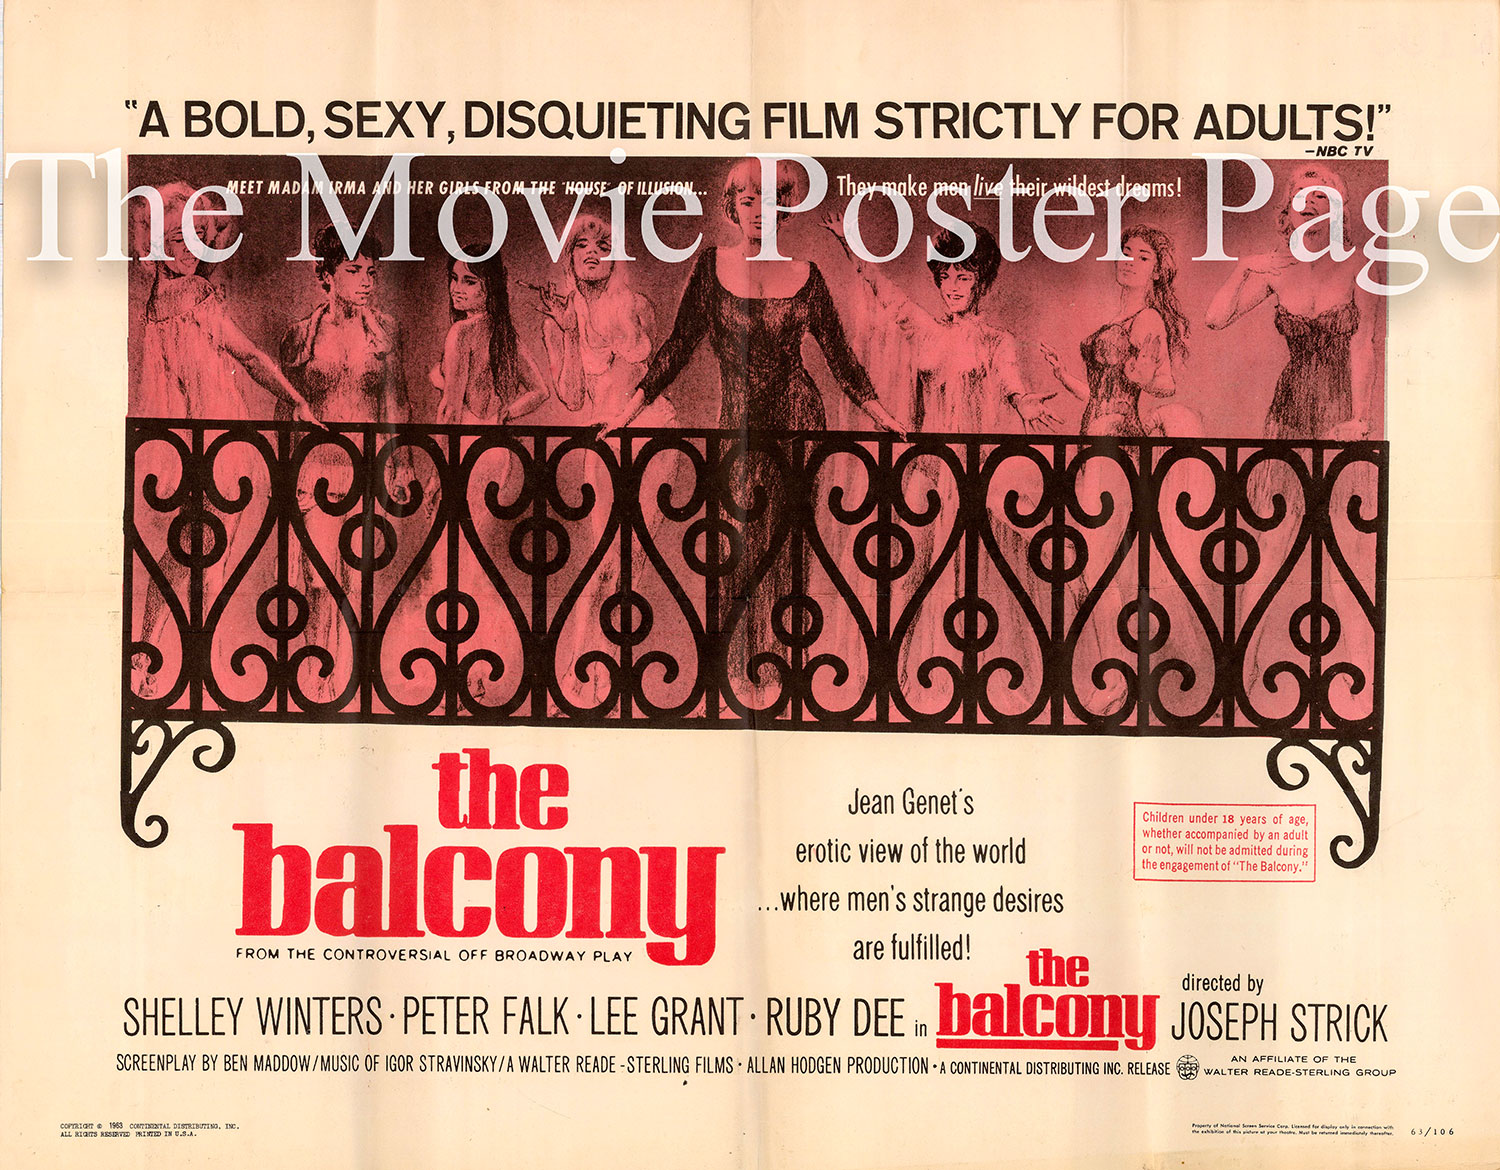 Pictured is a US half-sheet poster for the 1963 Joseph Strick film The Balconly starring Shelley Winters.